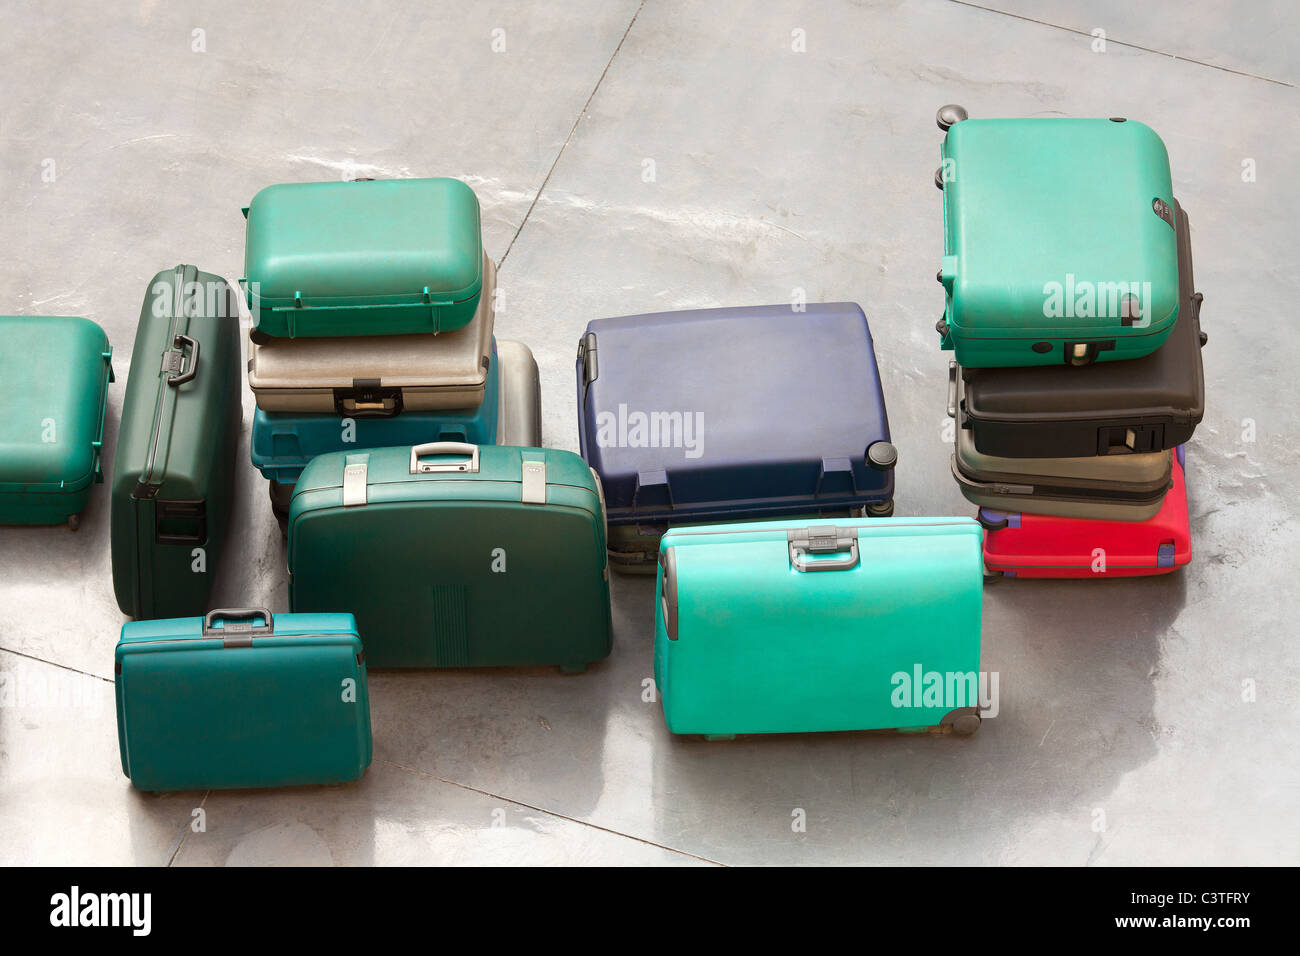 Line of suitcases, part of a sculpture made with suitcases at Arturo Merino Benitez International Airport, Santiago - Stock Image